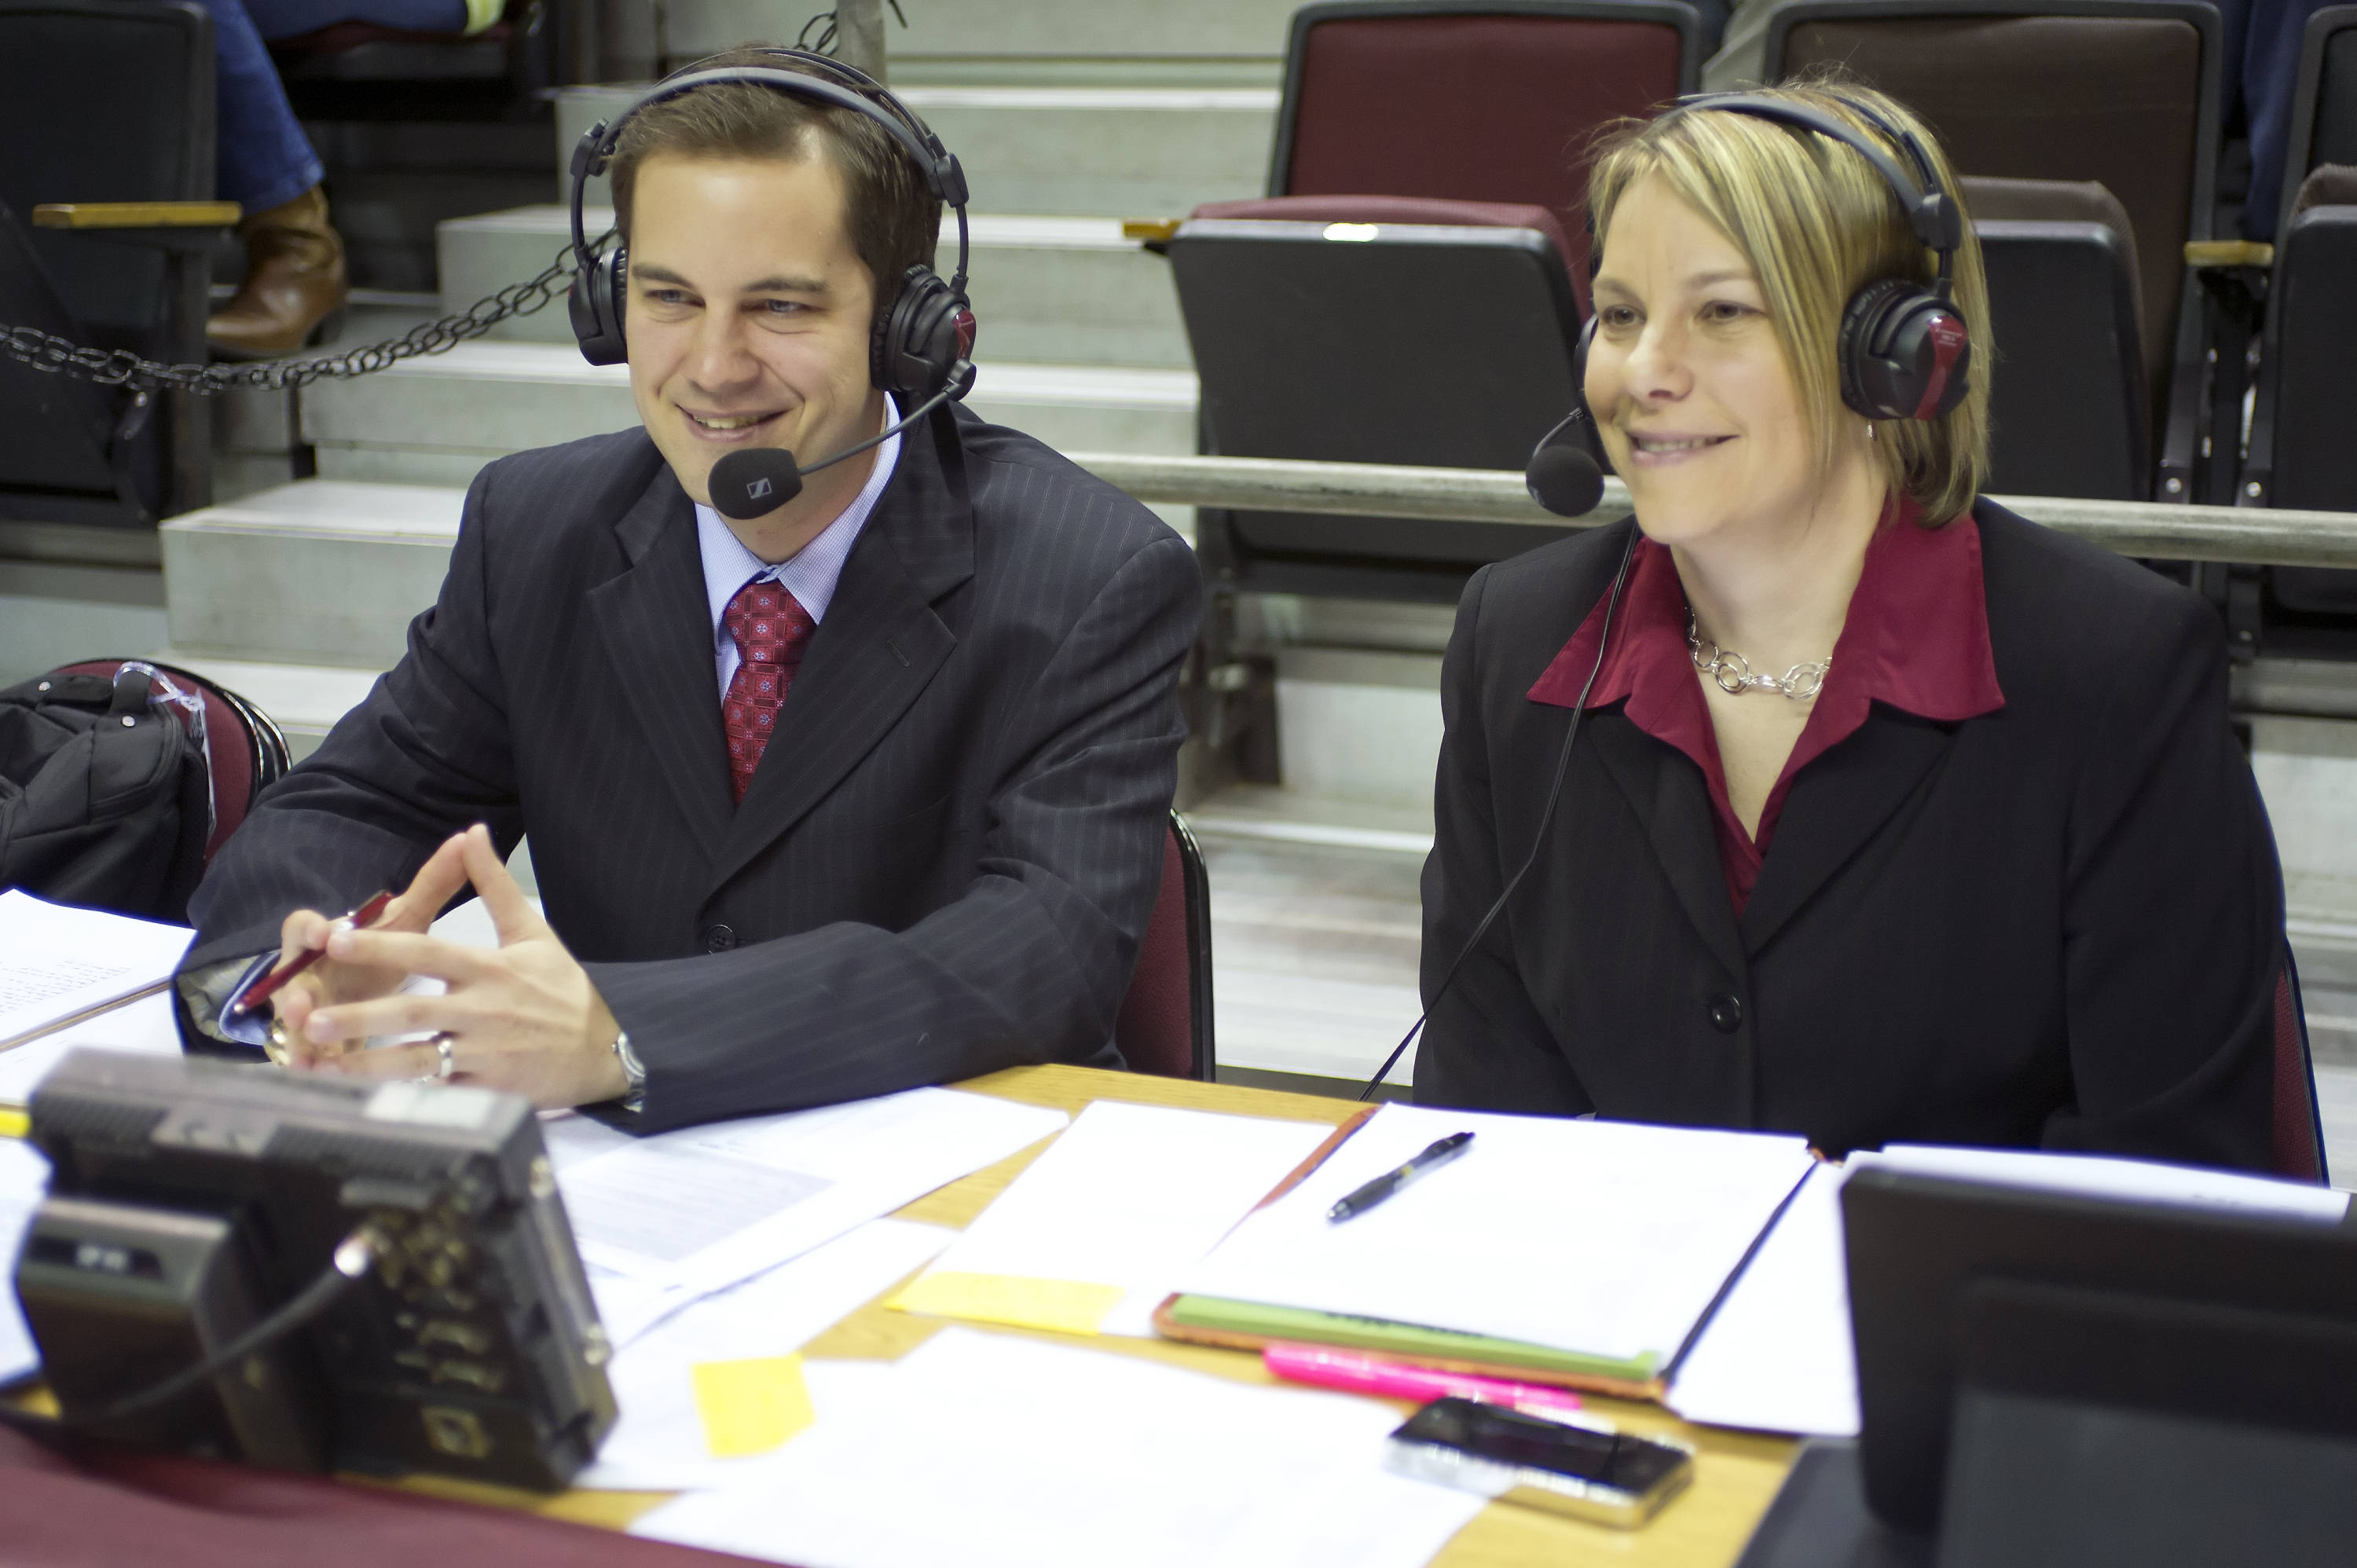 Ryan Pensey and Melissa Bruner broadcasting the game for ESPN3